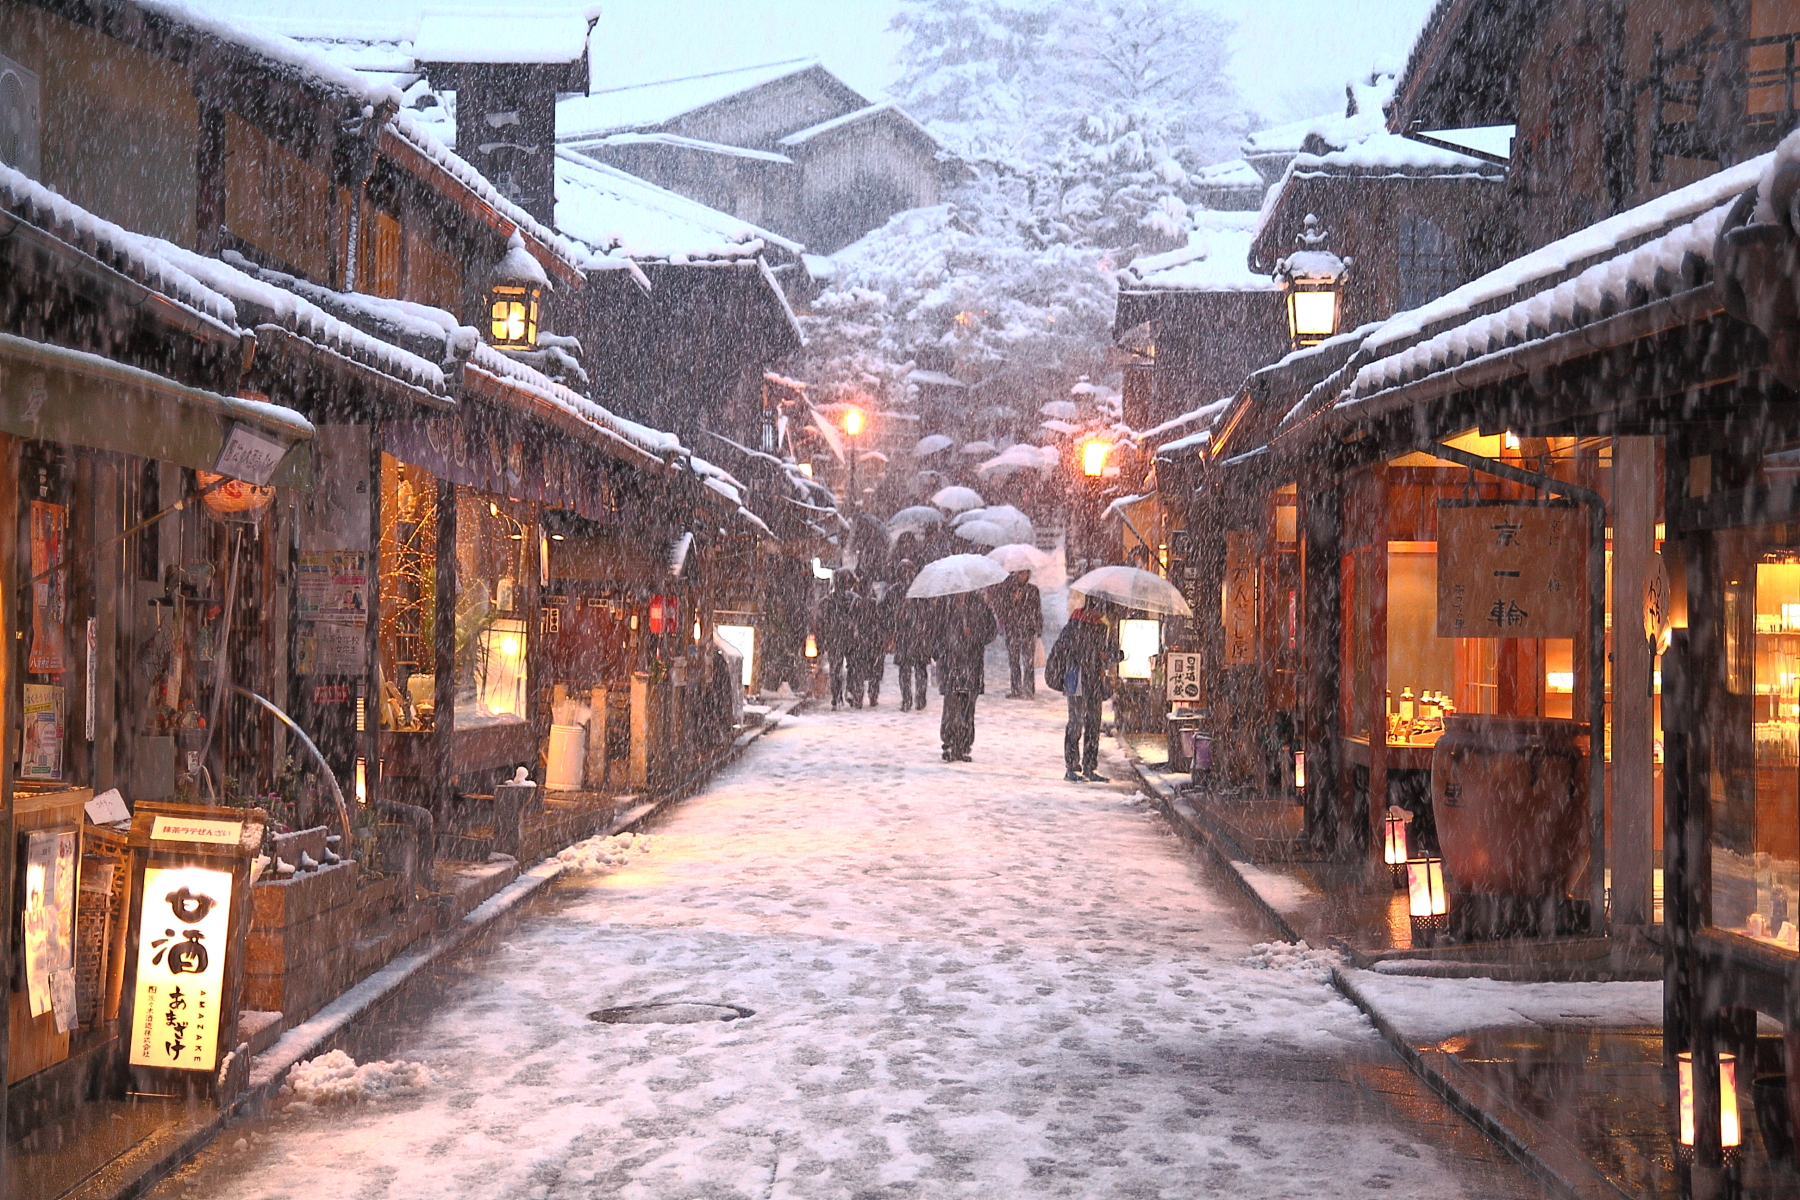 Through the streets of Kyoto in the Snow...